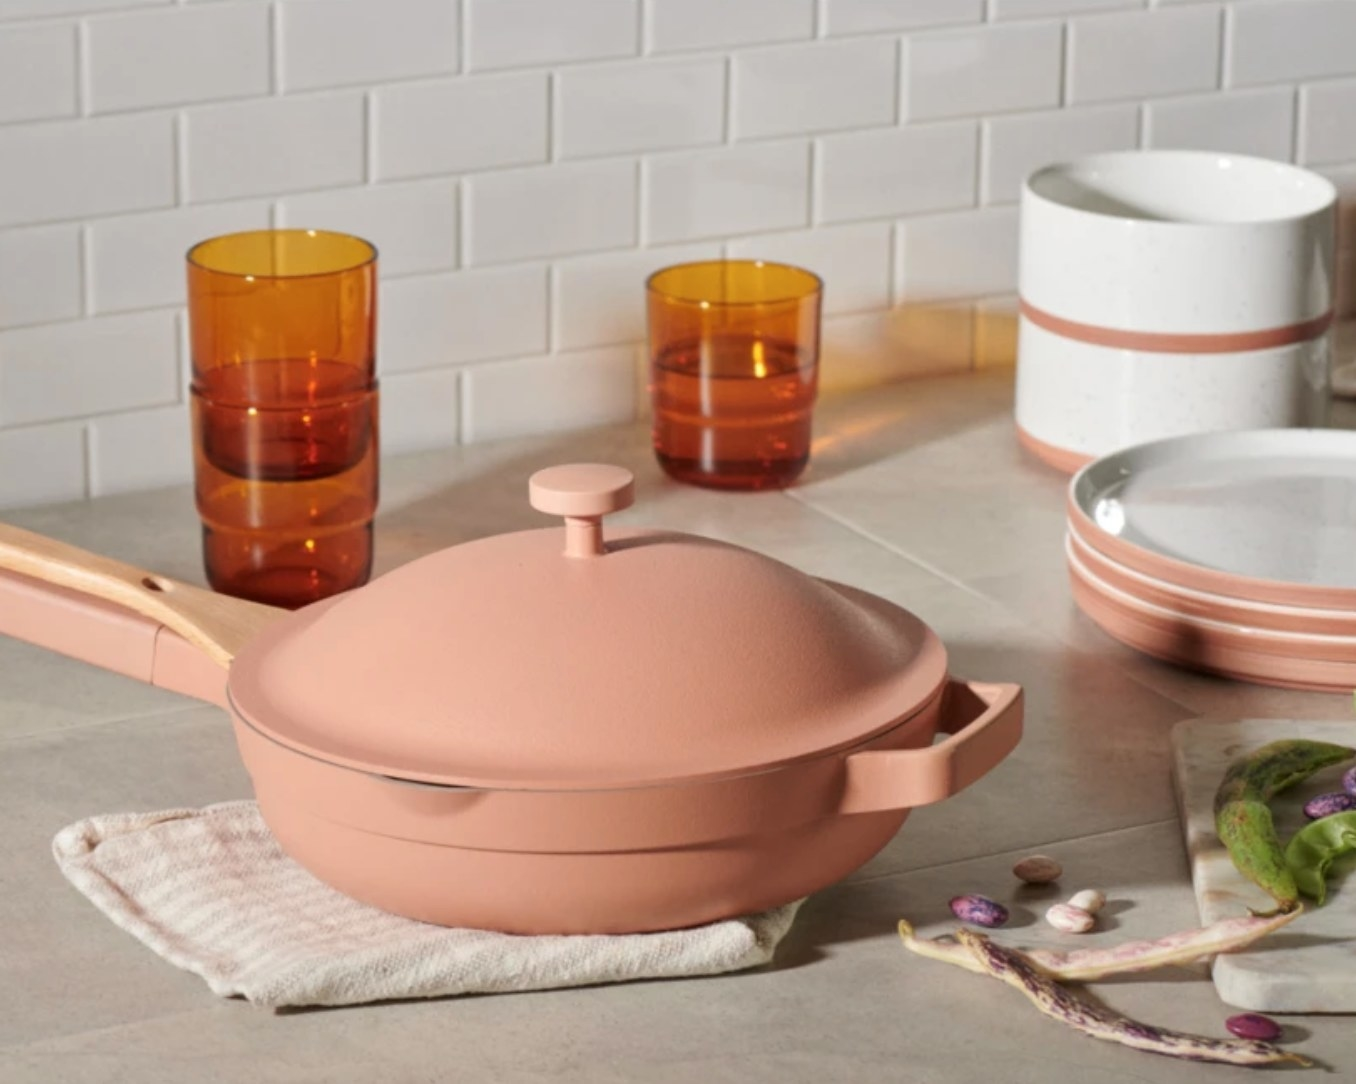 The pan in light pink